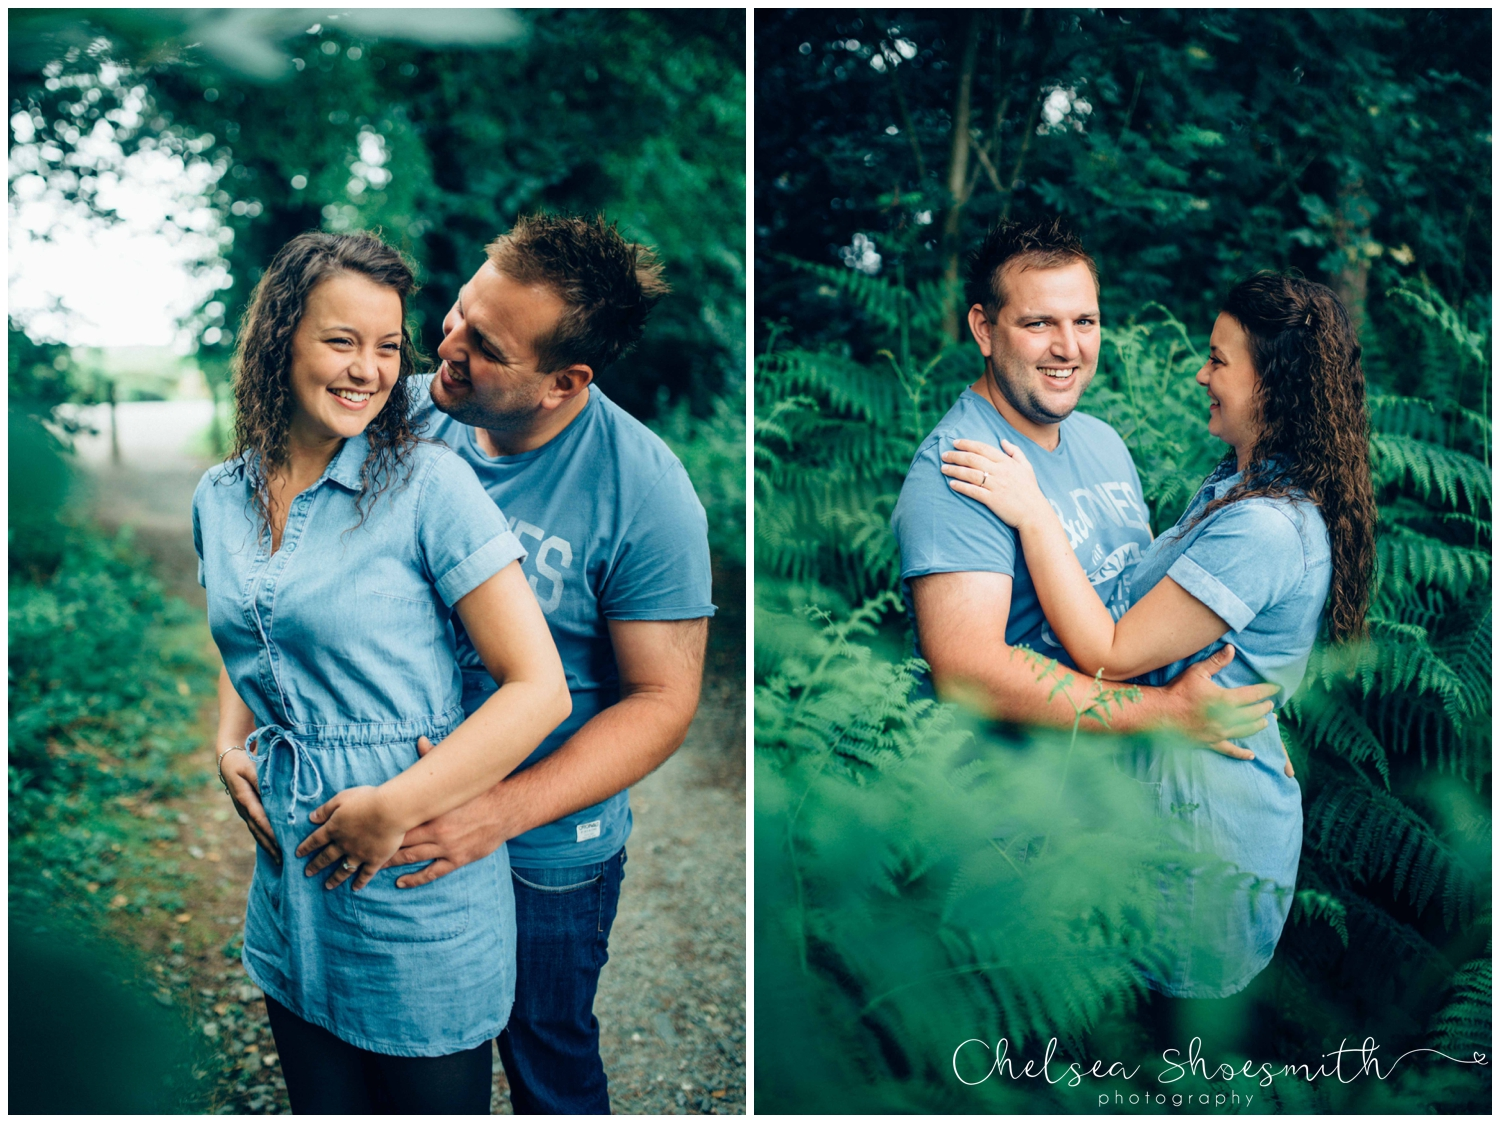 (20 of 75) Bethan & Peter Engagement Shoot Cheshire, Delamere Forest Chelsea Shoesmith Photography